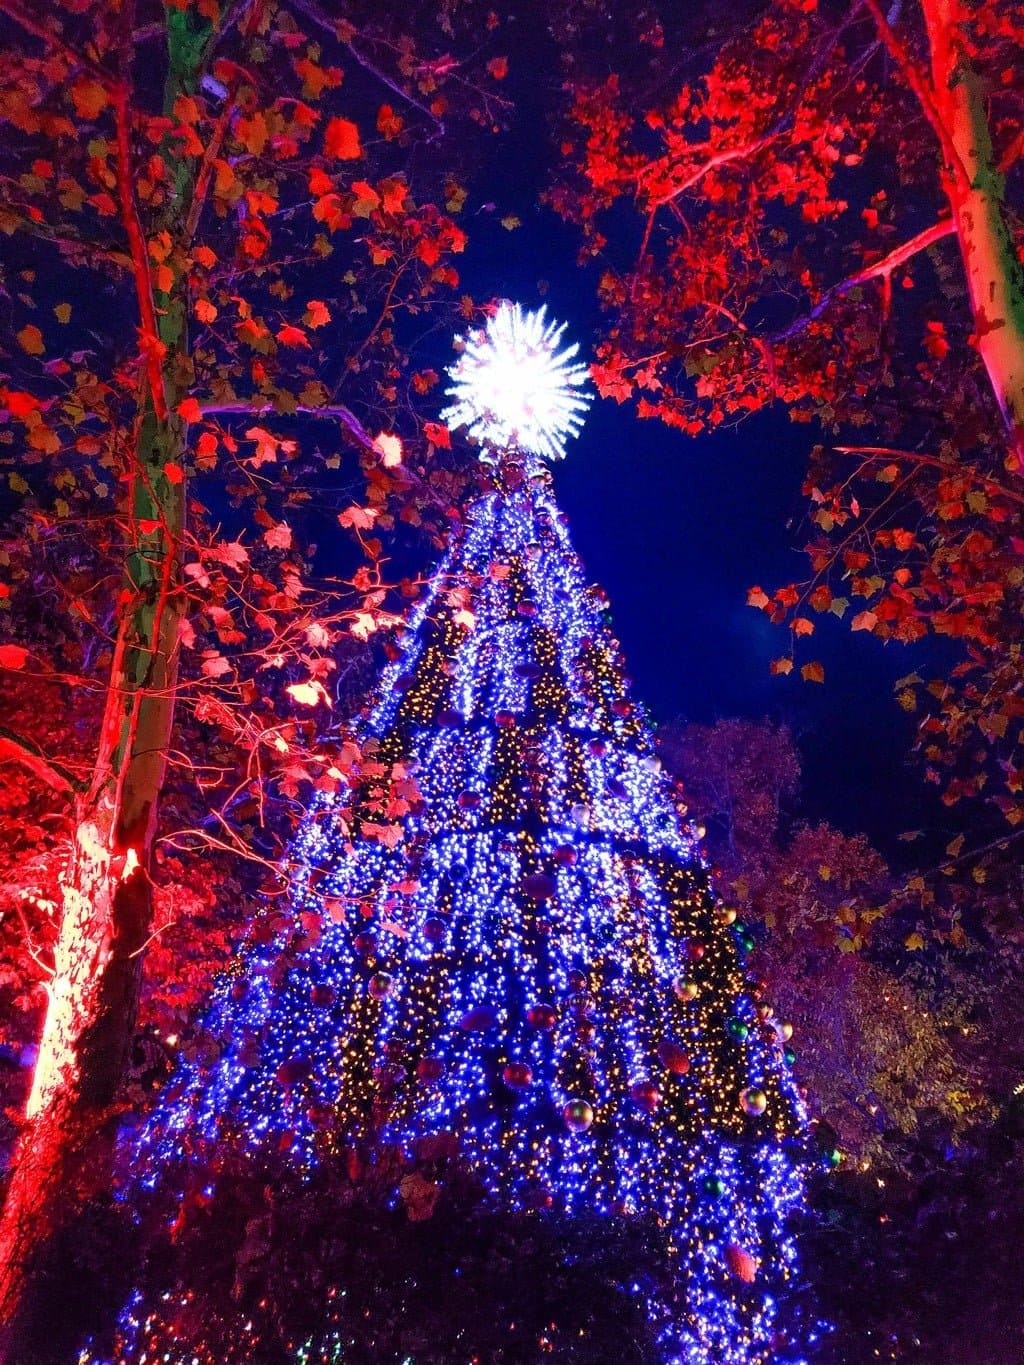 Silver Dollar City Christmas.Explore The Magic Of Christmas Showboat Branson Belle And